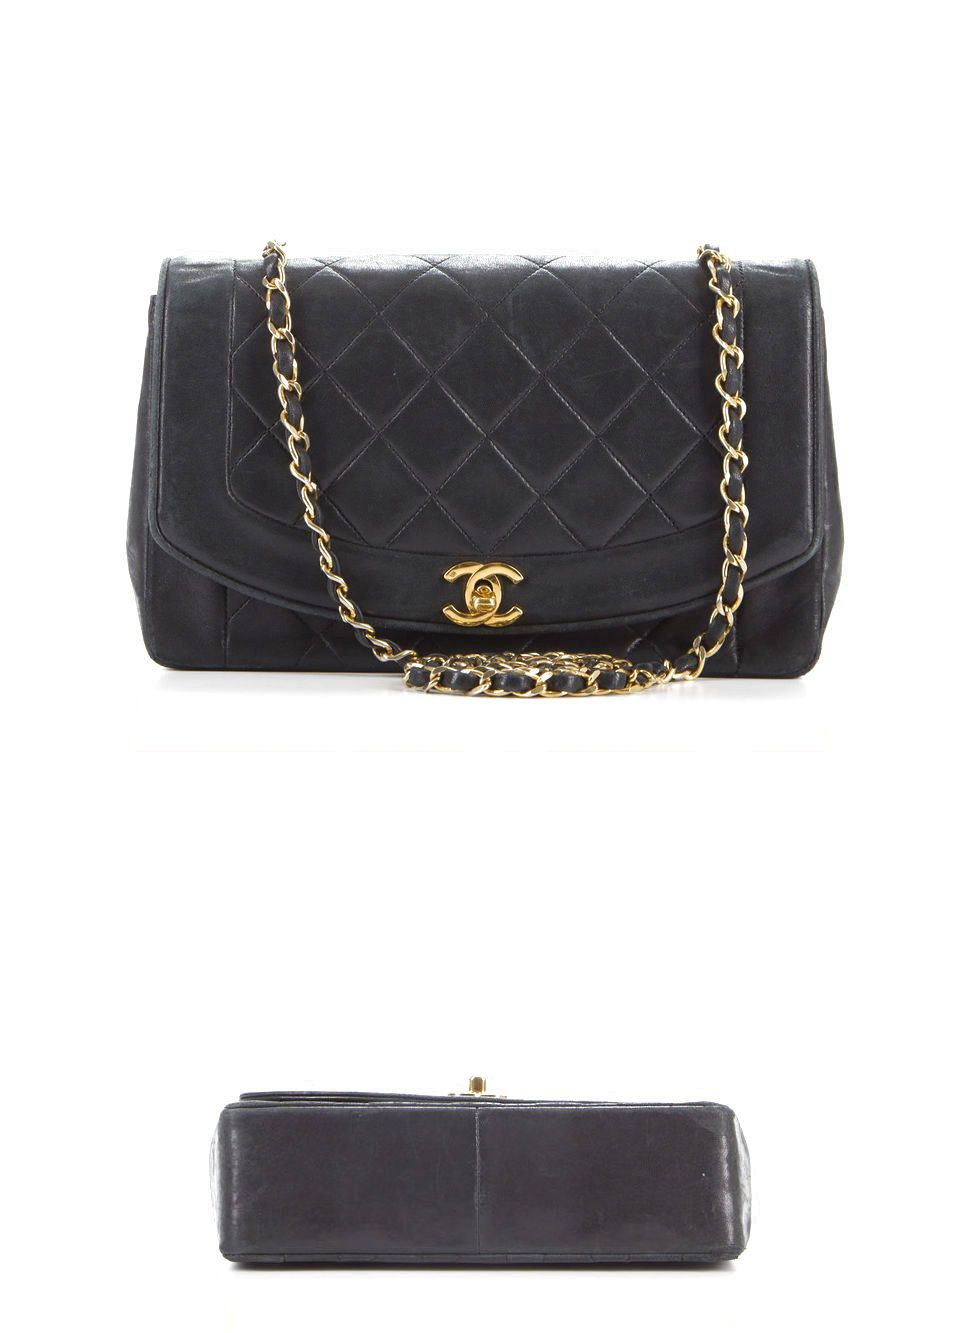 Vintage Chanel Black Lambskin Quilted Leather Cc Lock Medium Chic Bag 1675 0